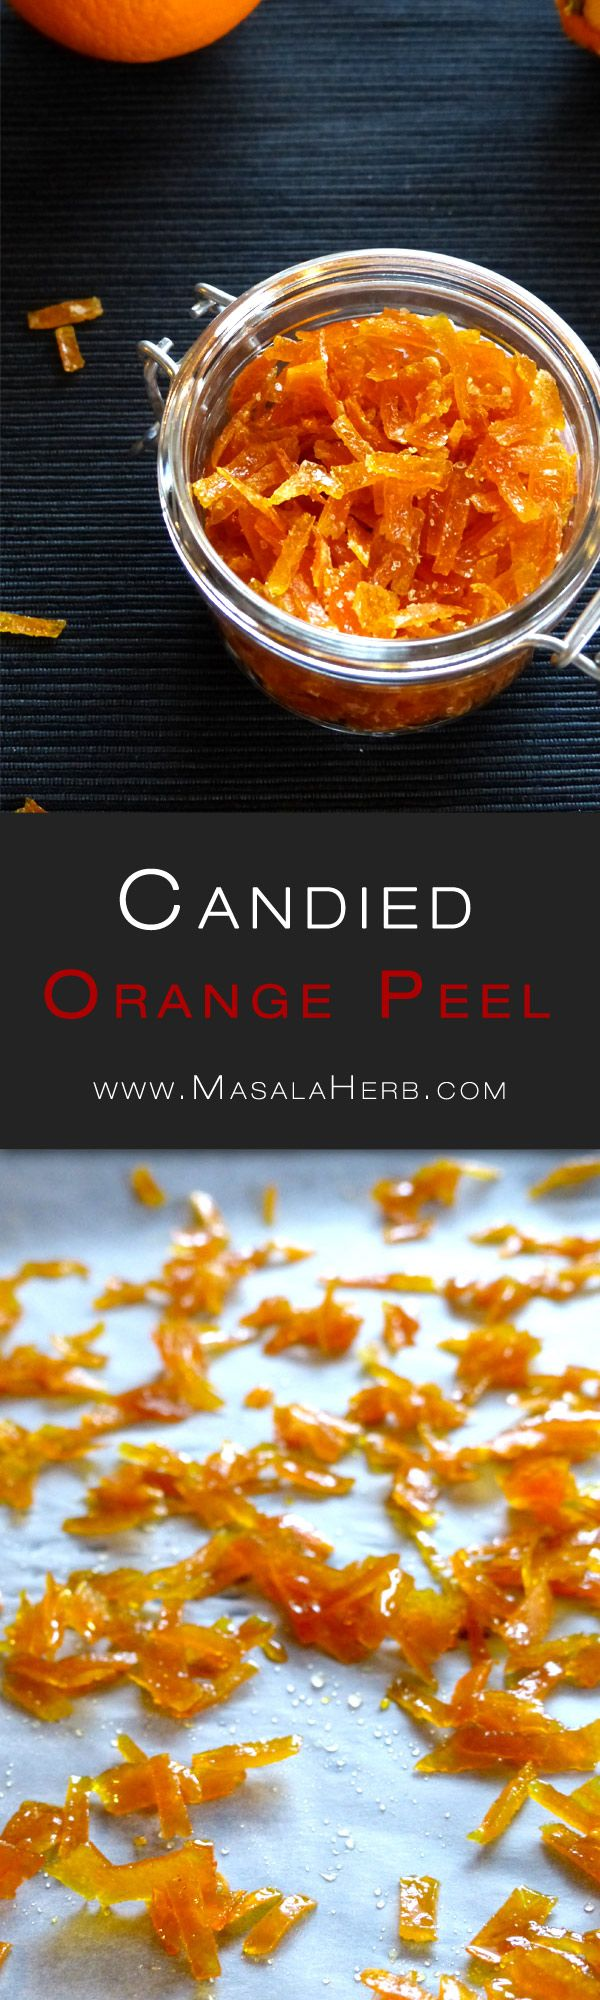 Quick Candied Orange Peel Recipe - How to make candied Orange Peel [DIY] - Add candied orange peel to sweet baked good and treats or dip into choclate to enjoy every bite #masalaherb #DIY #orange #candy www.masalaherb.com